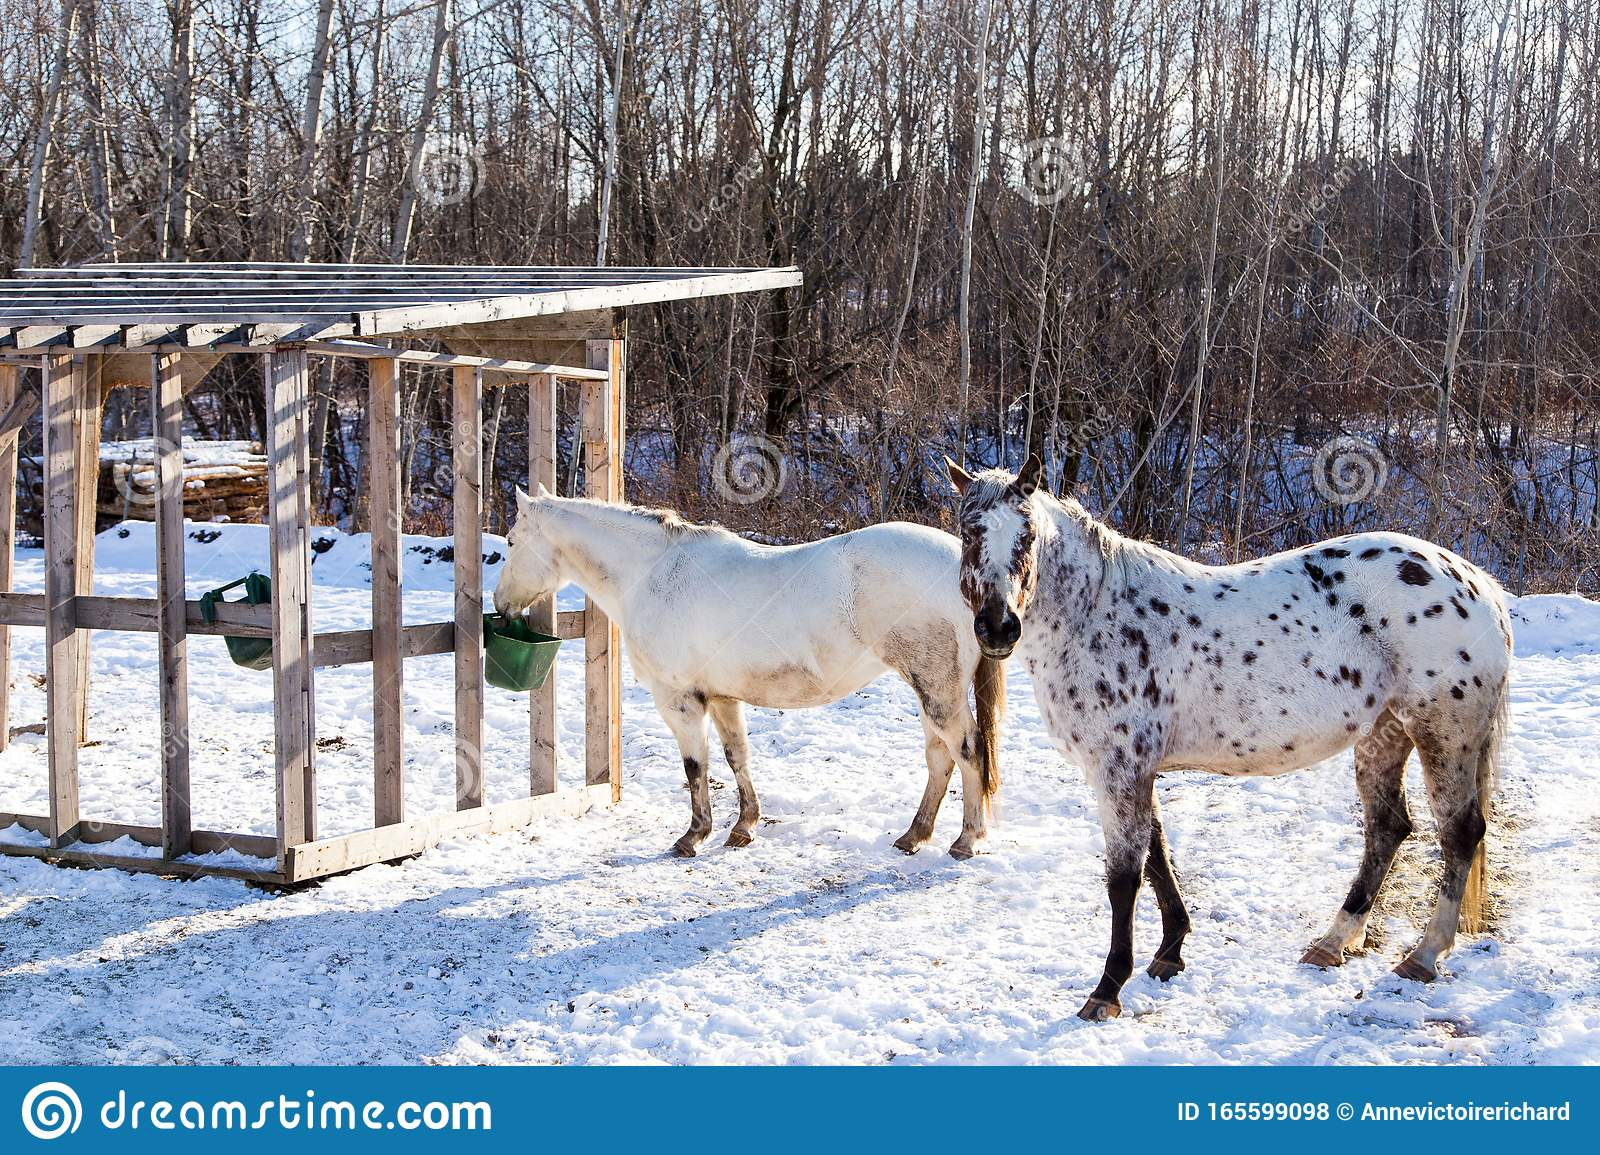 Beautiful Appaloosa Horse With White Coat And Brown Spots Standing In Pen Staring Next To Cream Coloured Animal Stock Photo Image Of Breed Countryside 165599098